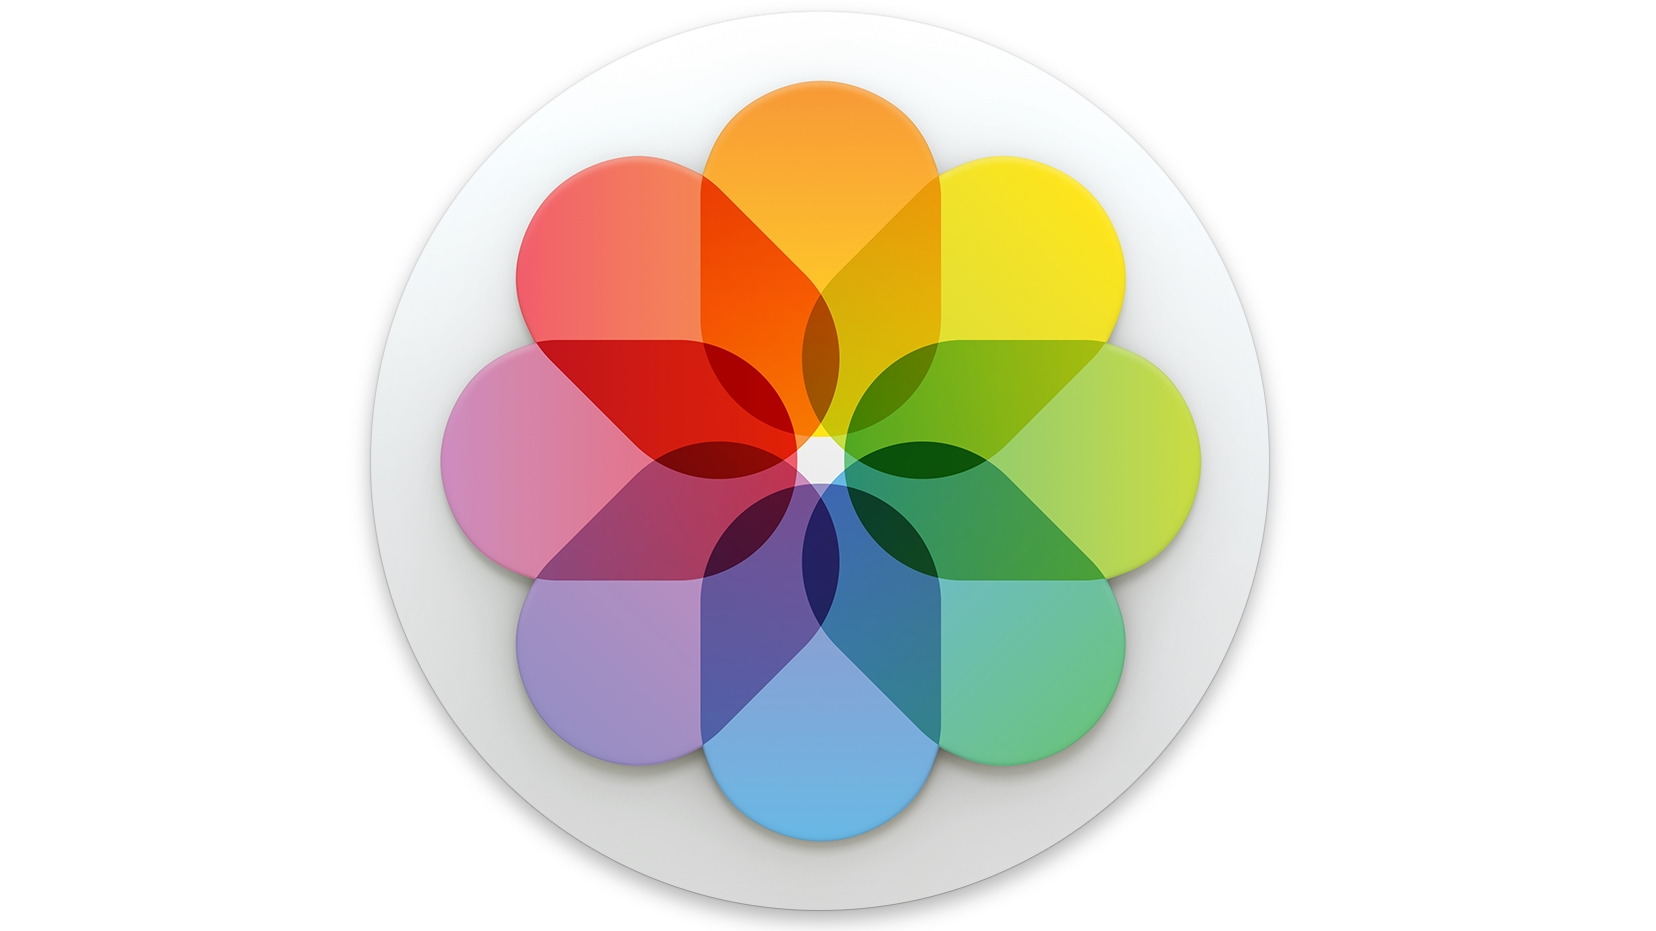 How To Use Anything As An Iphone Live Wallpaper Techradar